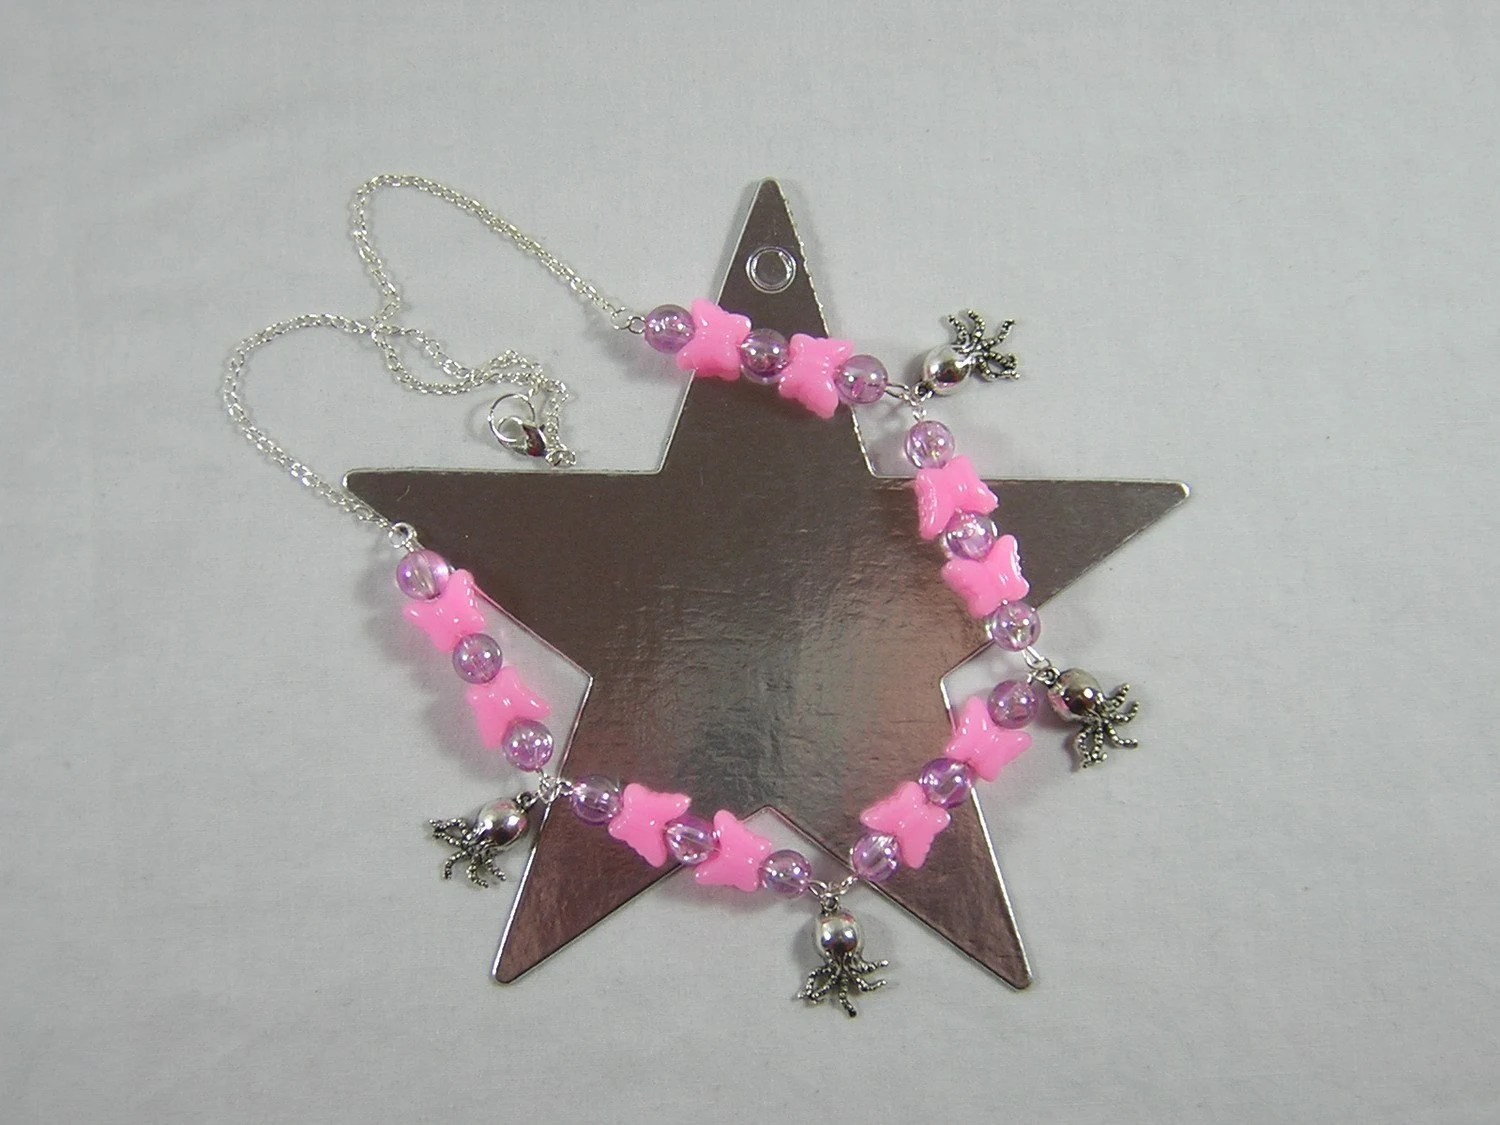 Pink Butterflies and Cthulhu Necklace - Handmade by Rewondered D225N-99213 - $23.95